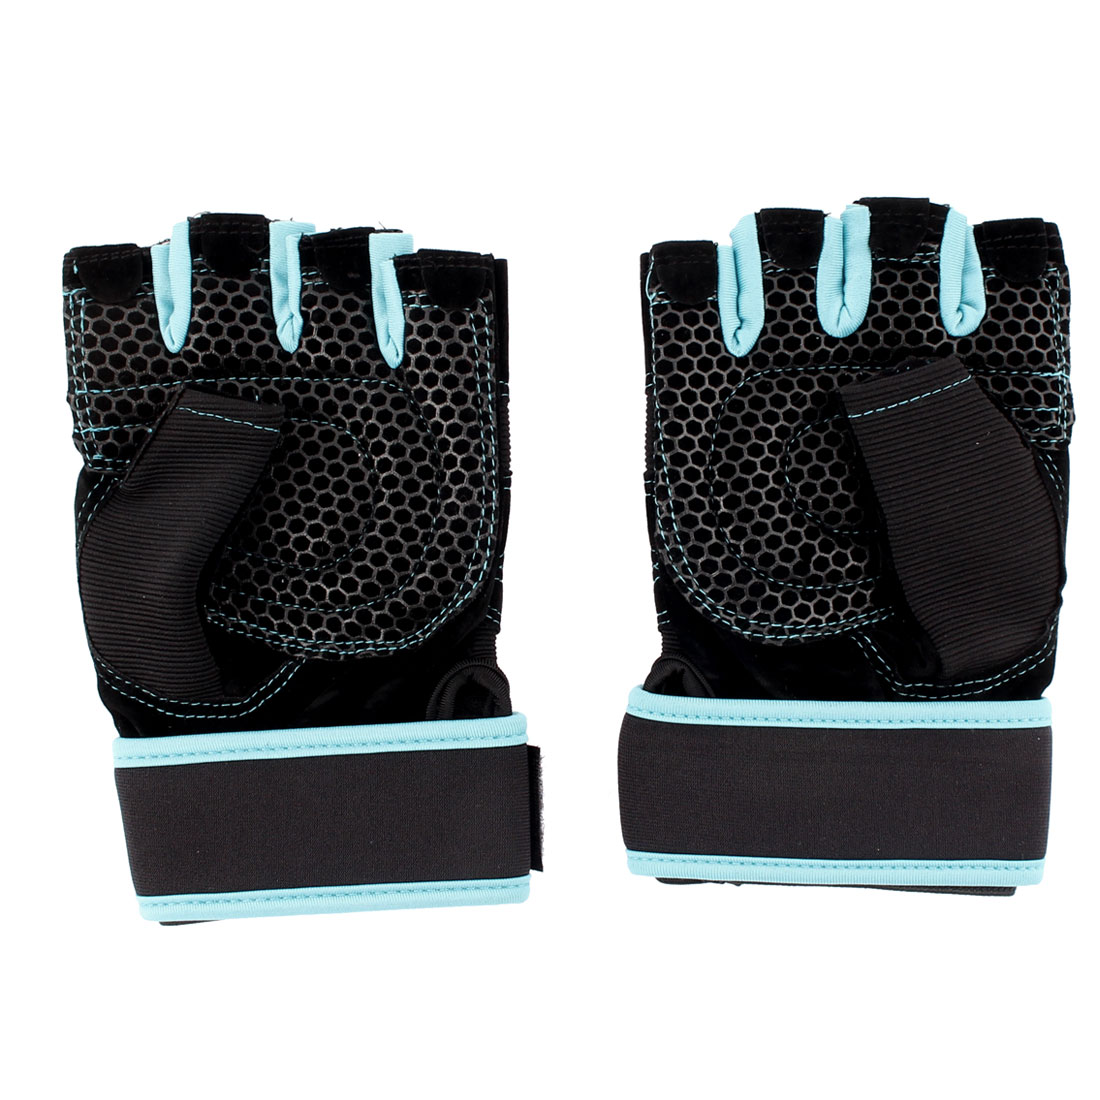 Unique Bargains Cycling Driving Sports Fingerless Mesh Hole Braided Fitness Gloves Black M Pair